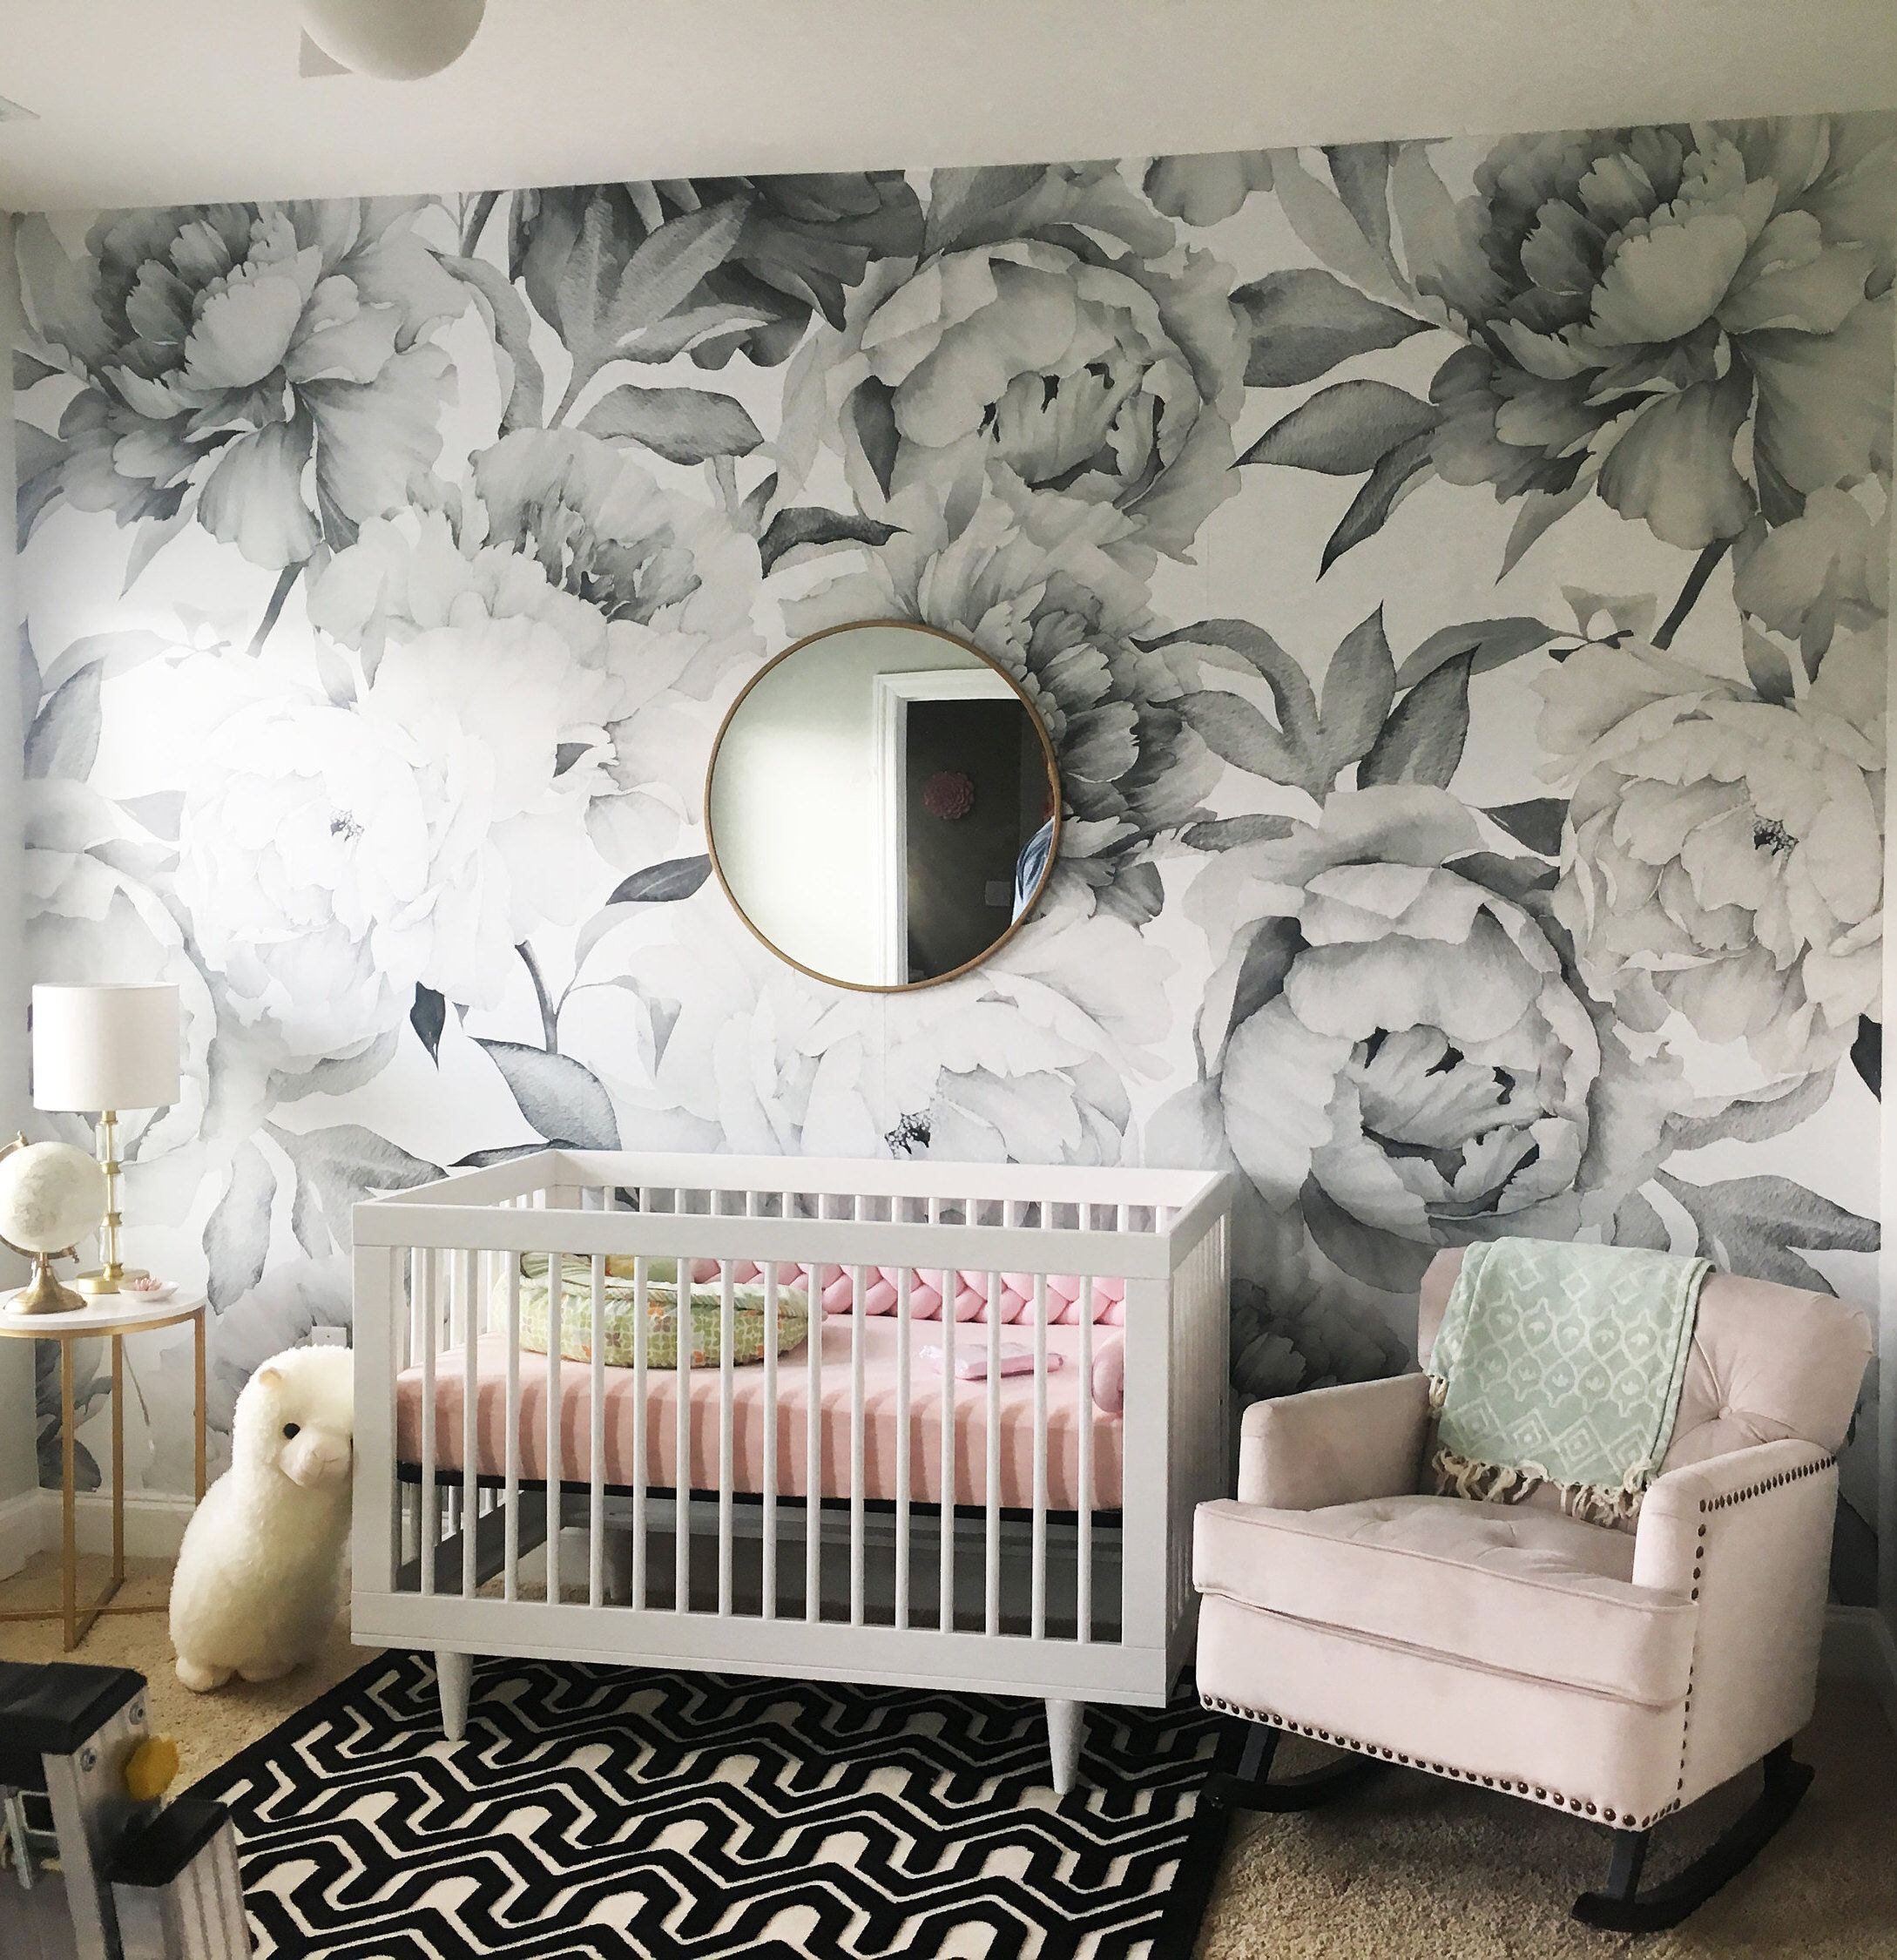 Removable Wallpaper Self Adhesive Wallpaper Watercolor Extra Etsy Mural Wallpaper Nursery Wallpaper Removable Wallpaper